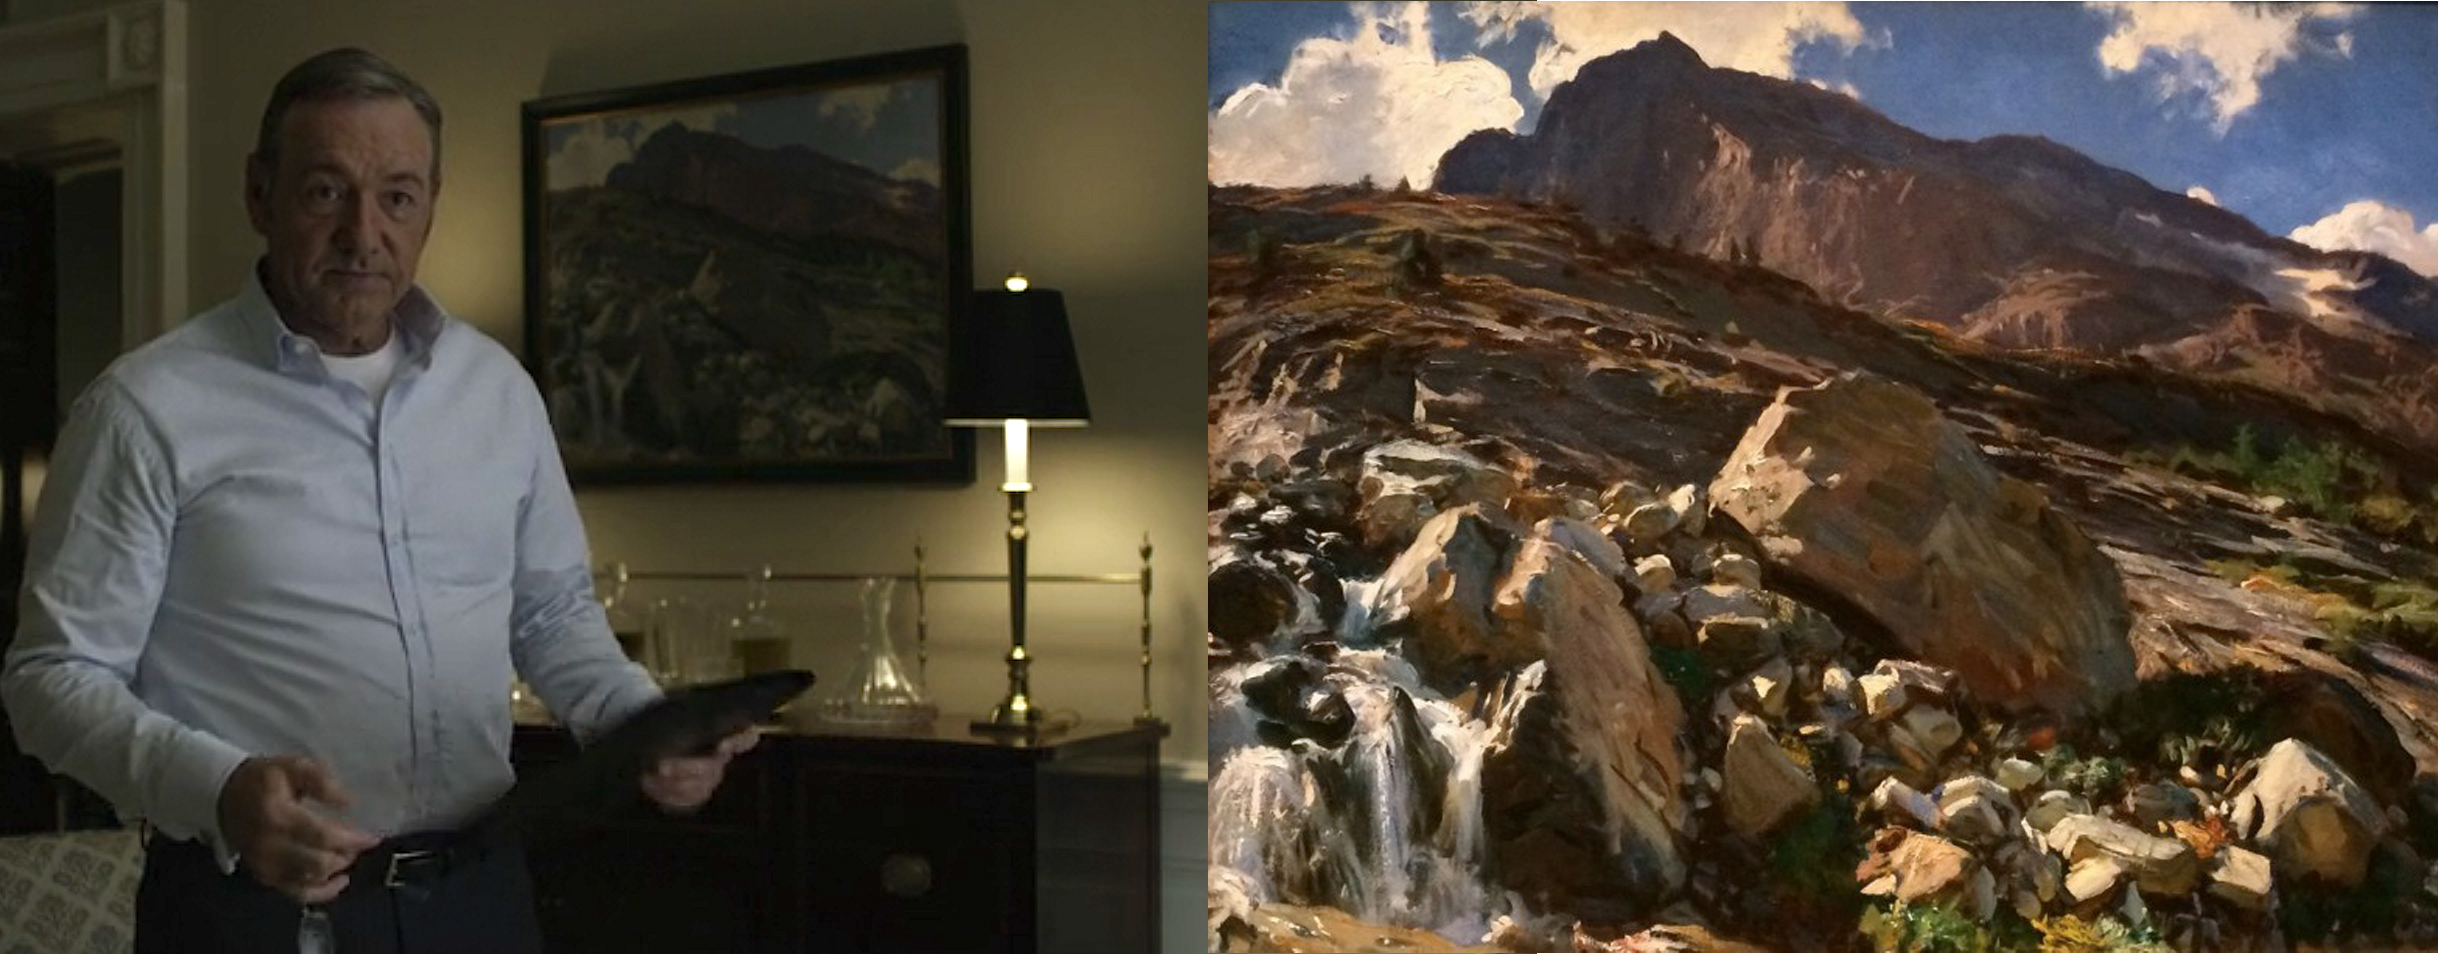 "Frame on left: In background we see hanging Sargent""s painting of the Simplon Pass."